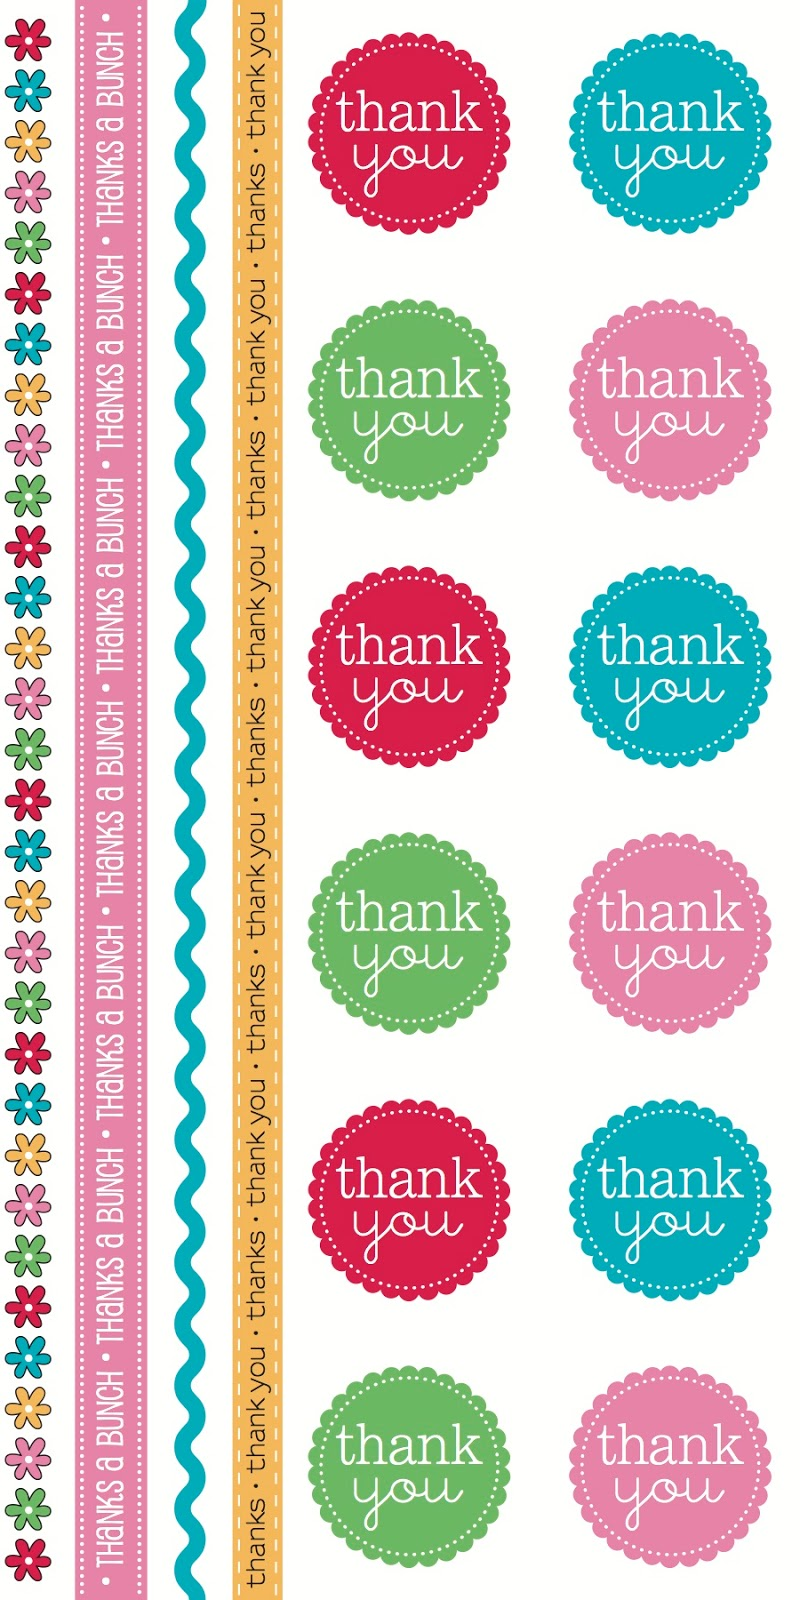 SRM Stickers BLog - New Product Reveal Stickers - #stickers #Take2 #Thank You